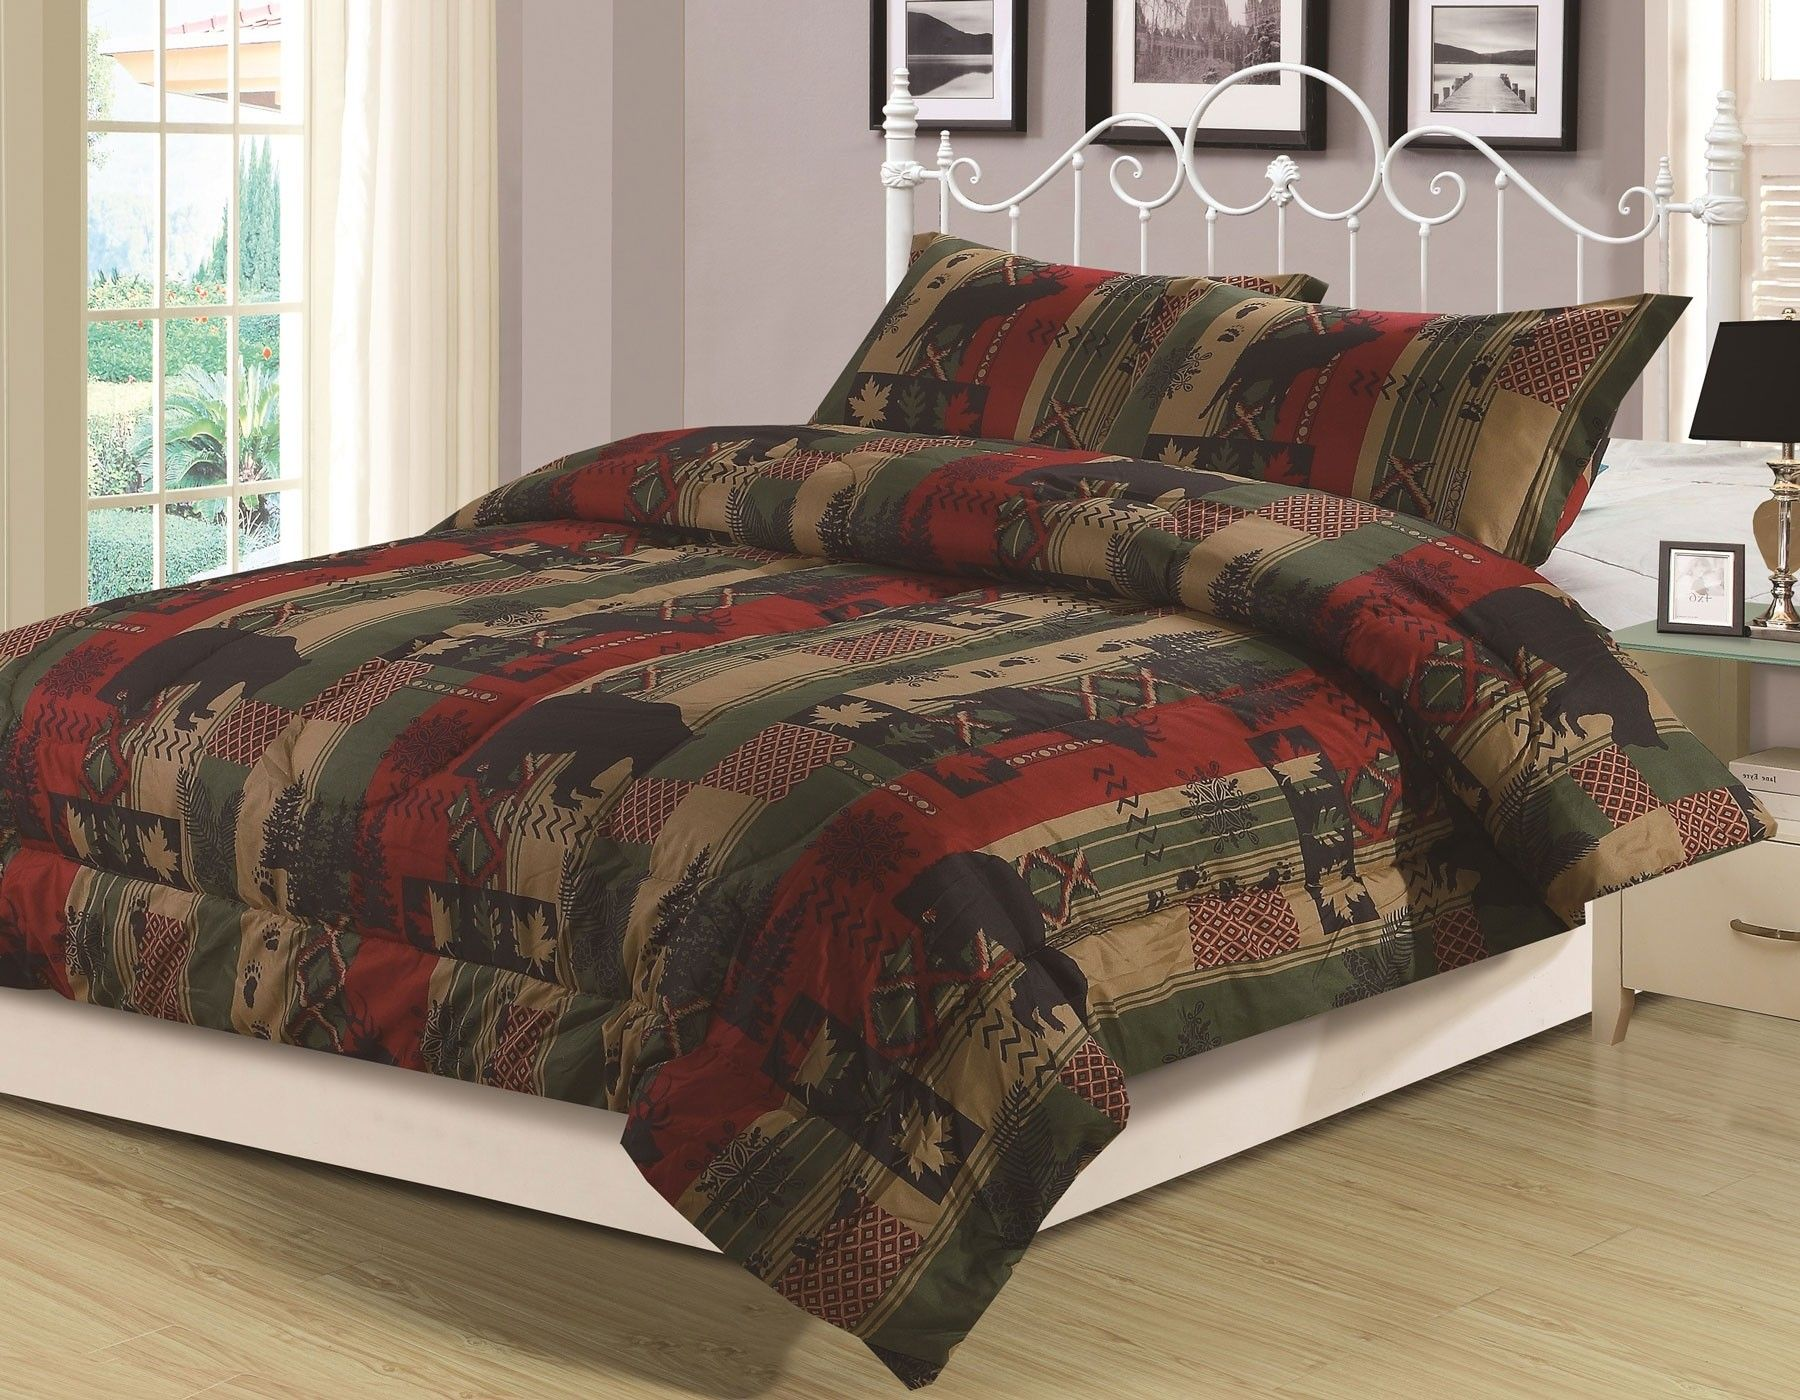 cabin clearance rustic chic comforter beds full size duvet for black lauren comforters bedding quilts cabins shabby conrad bear sets of